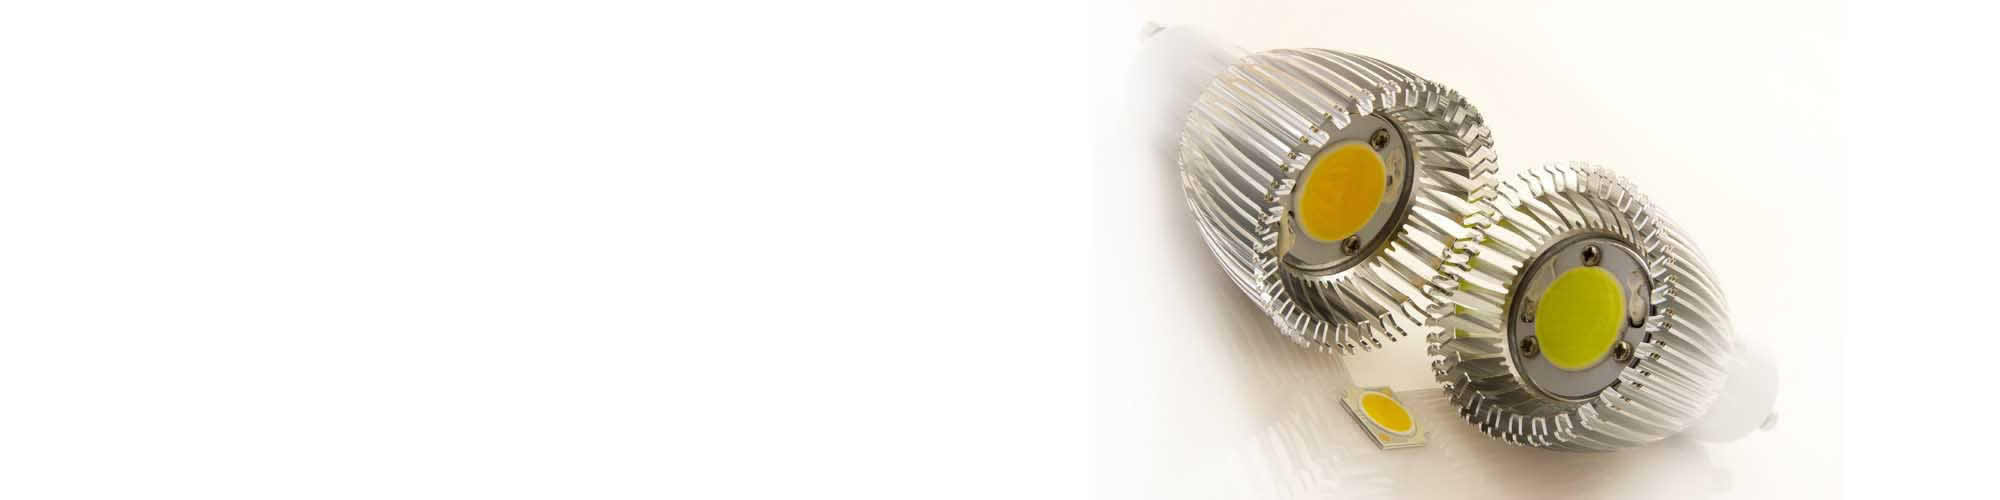 Color enabler